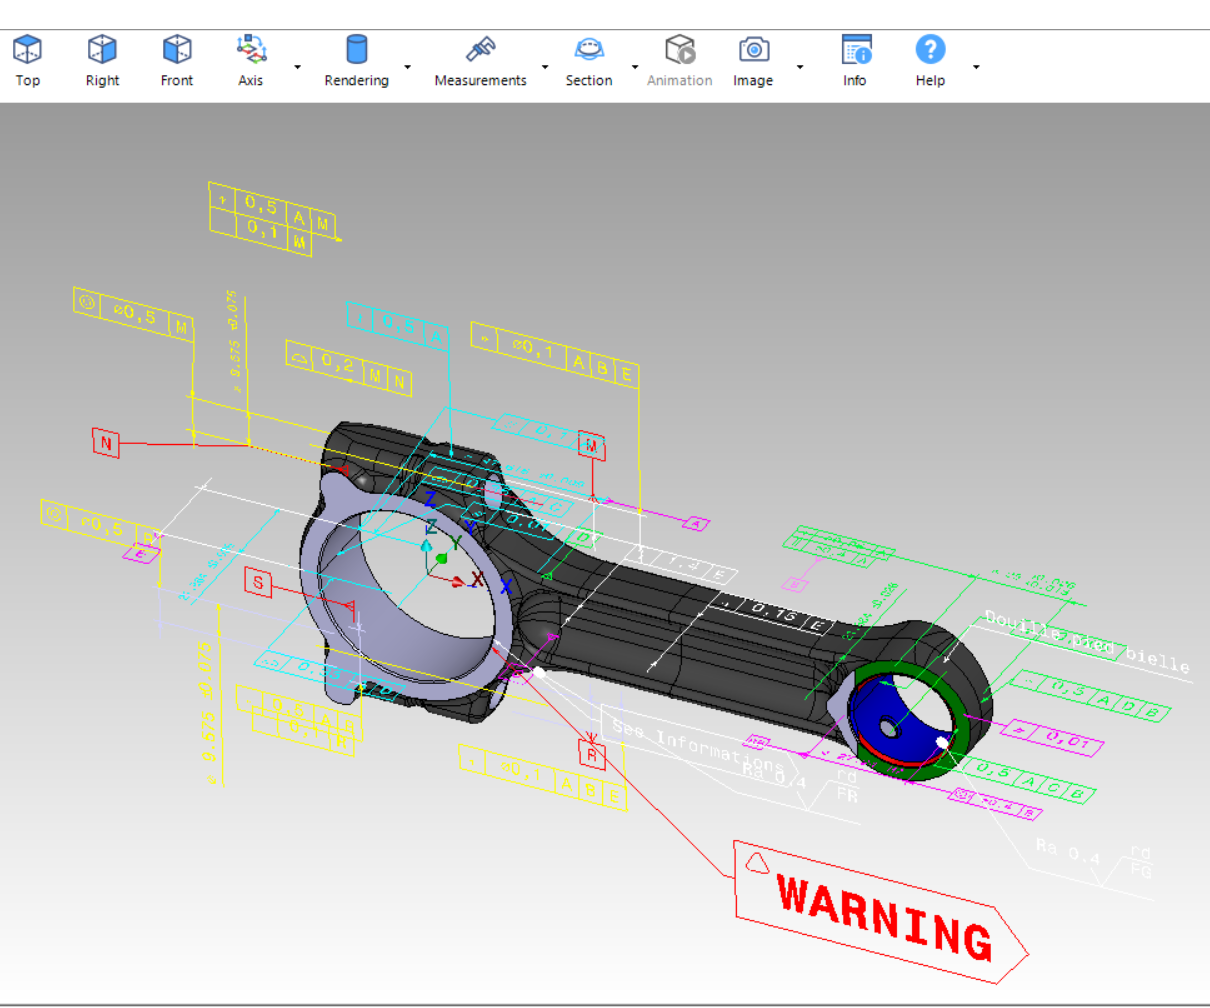 Vero Software's WorkXplore CAD viewer and analyzer